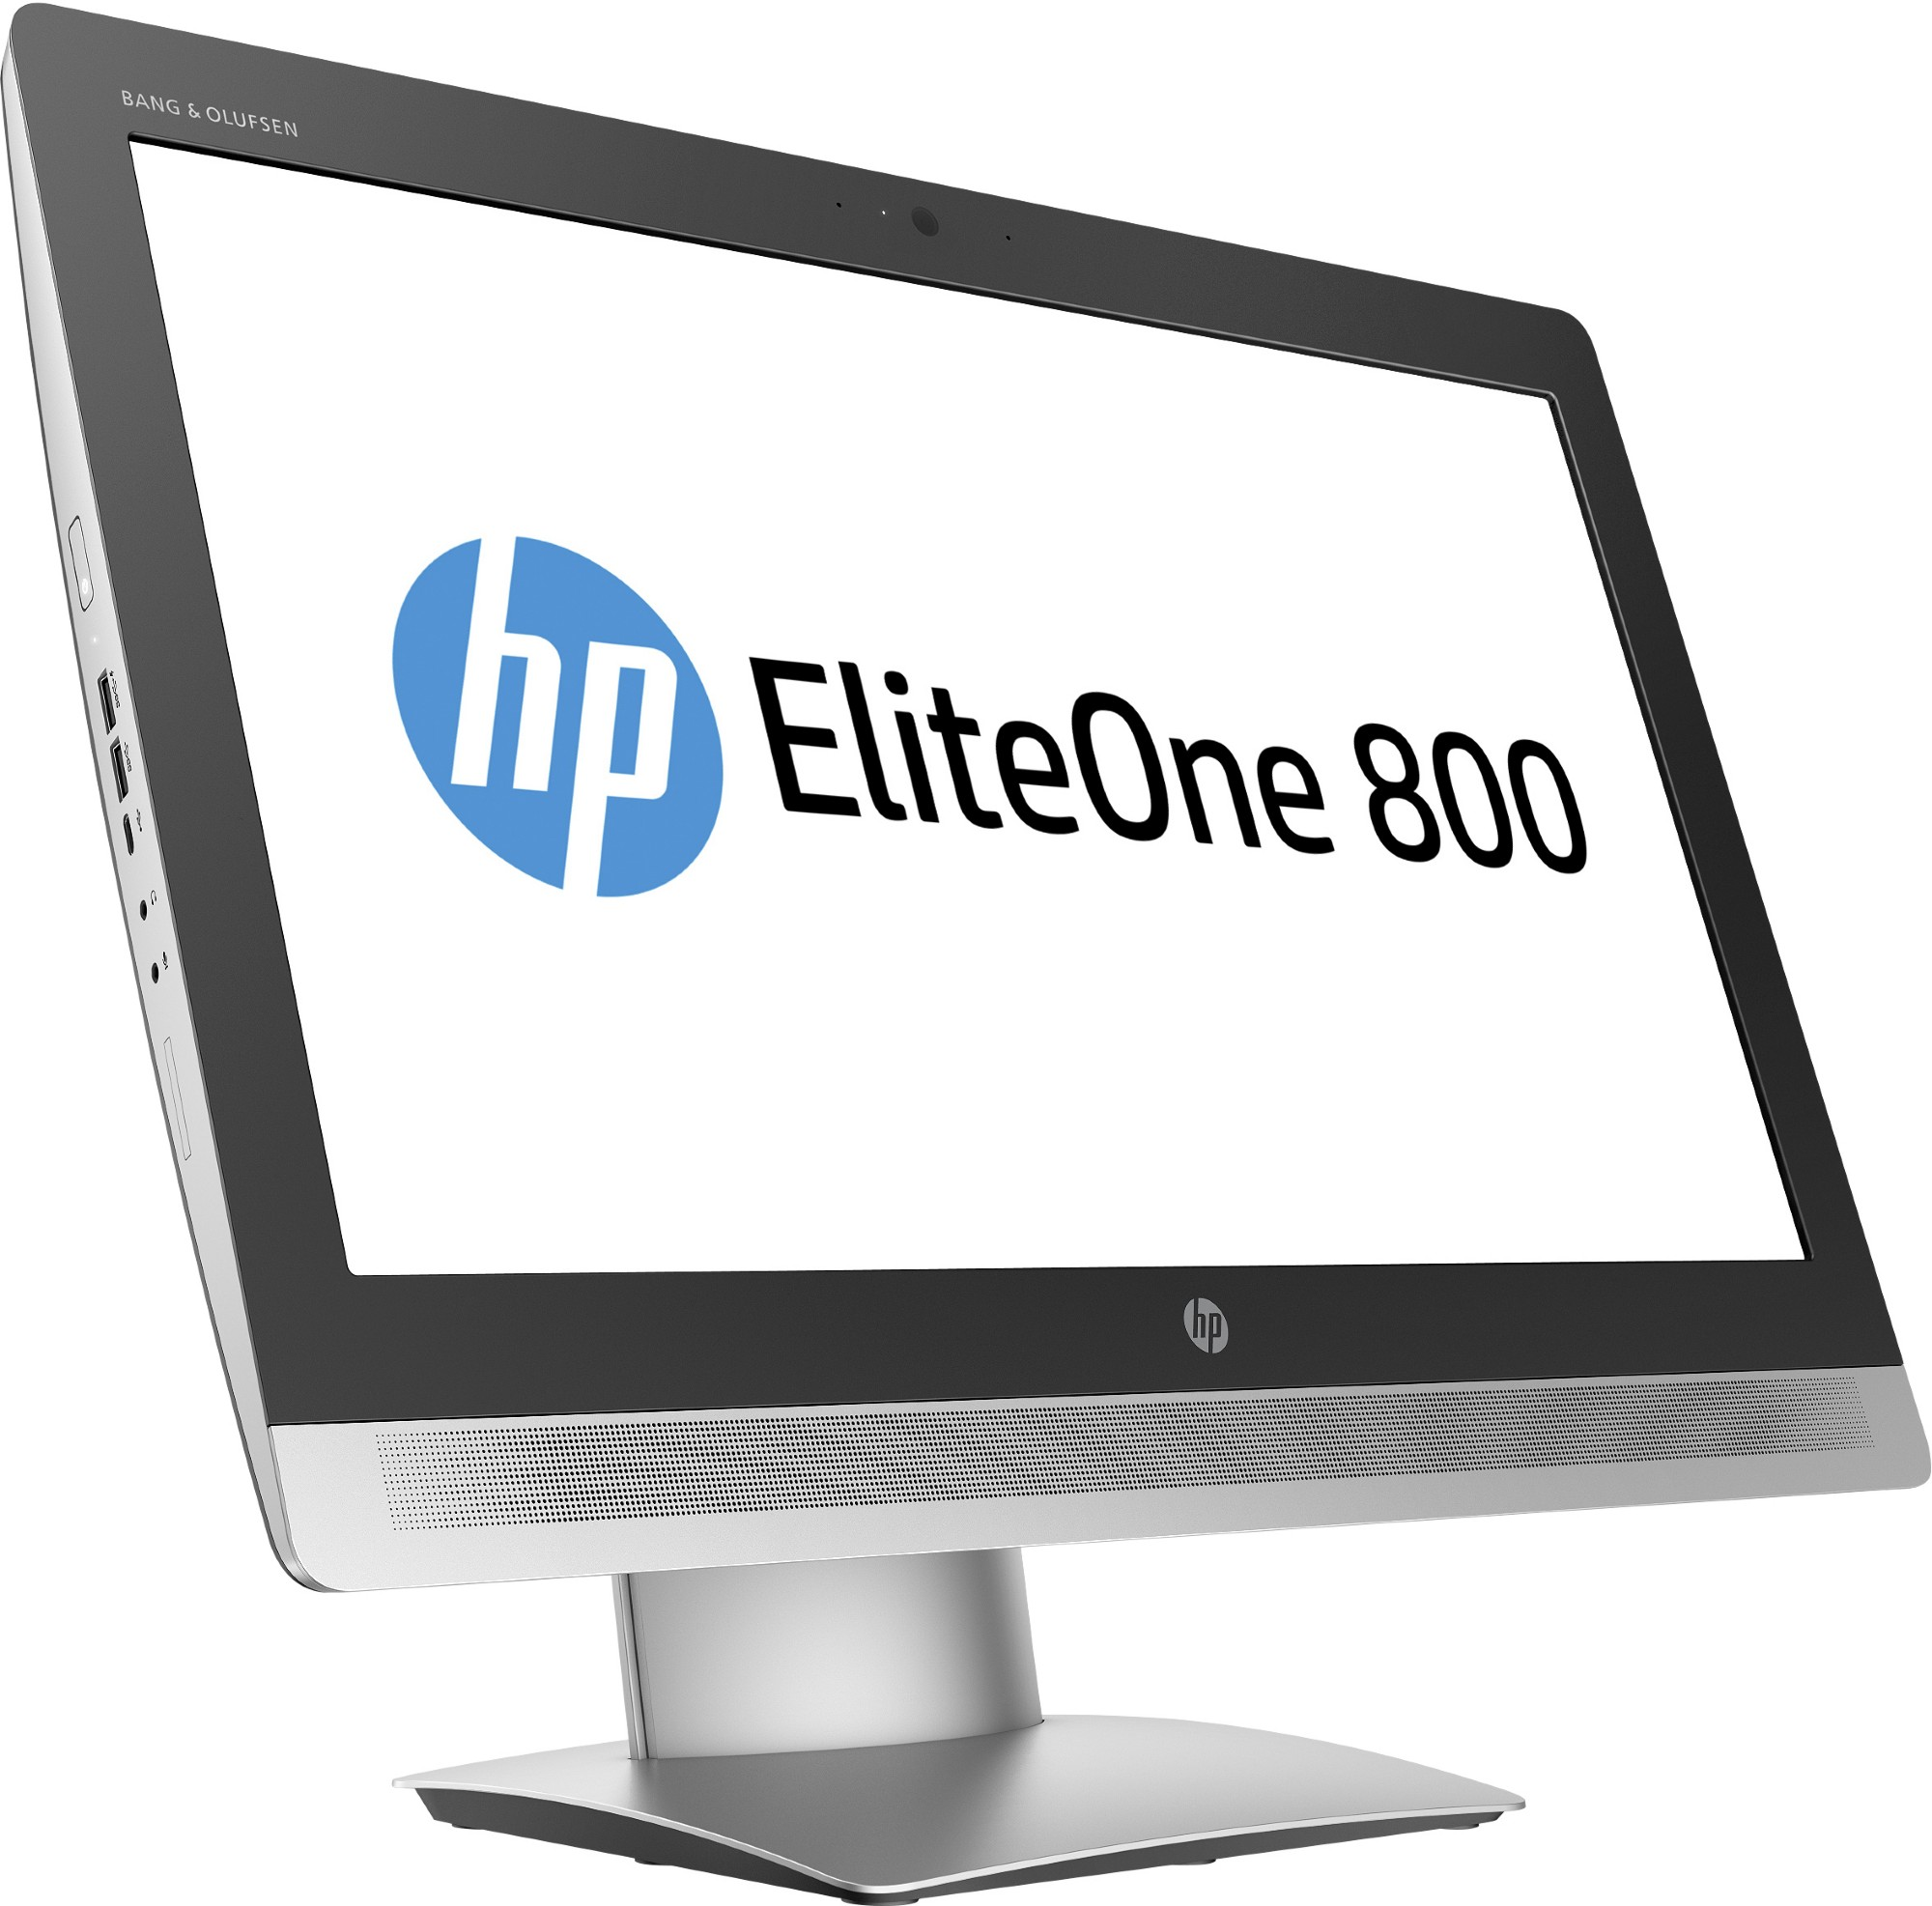 "HP EliteOne 800 G2 58.4 cm (23"") Non-Touch All-in-One PC"